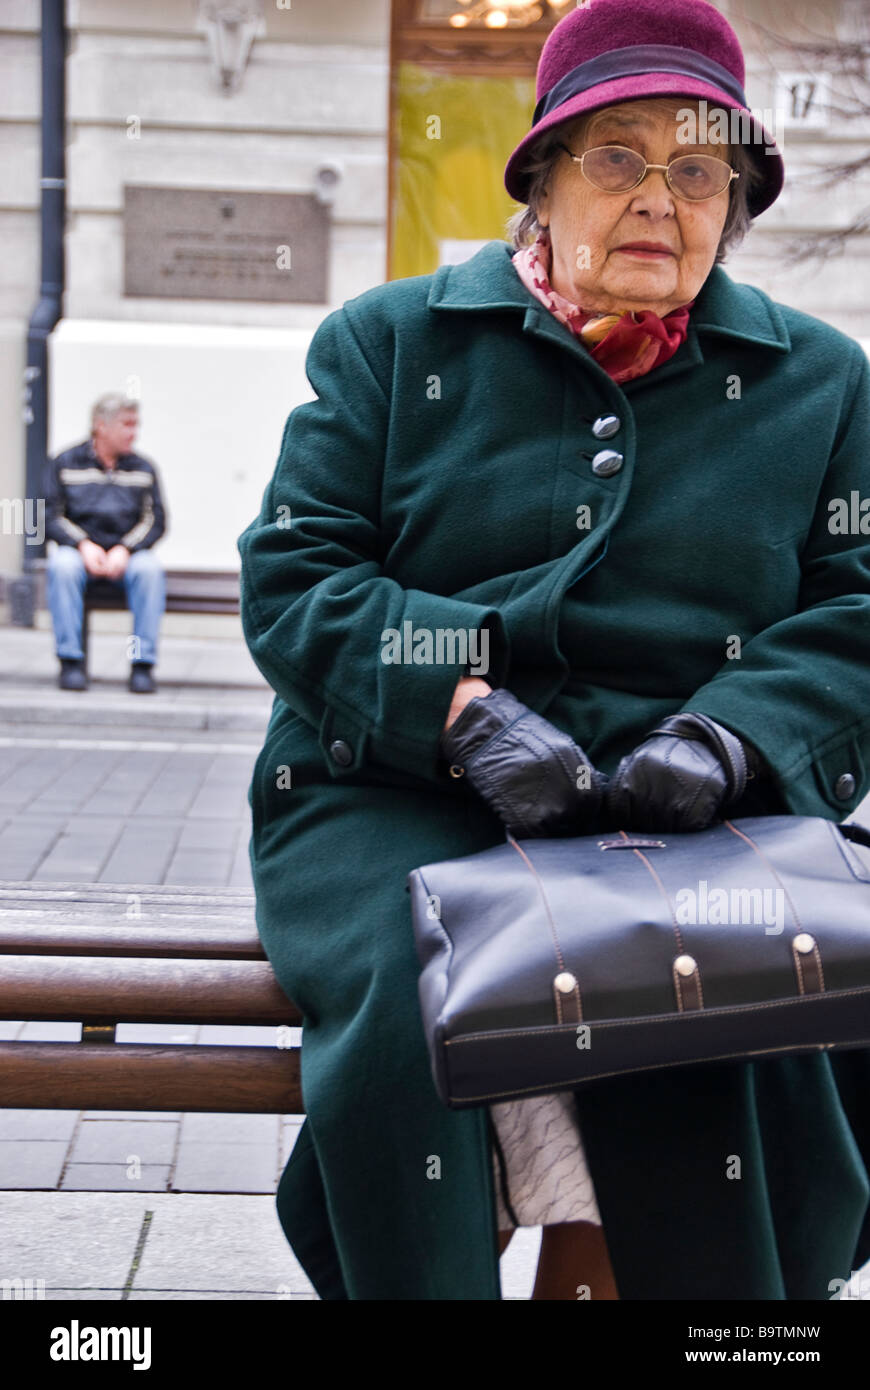 Woman seating on a bench in the streets of Vilnius looking at the camera. Man in the background, Vilnius, Lithuania, - Stock Image